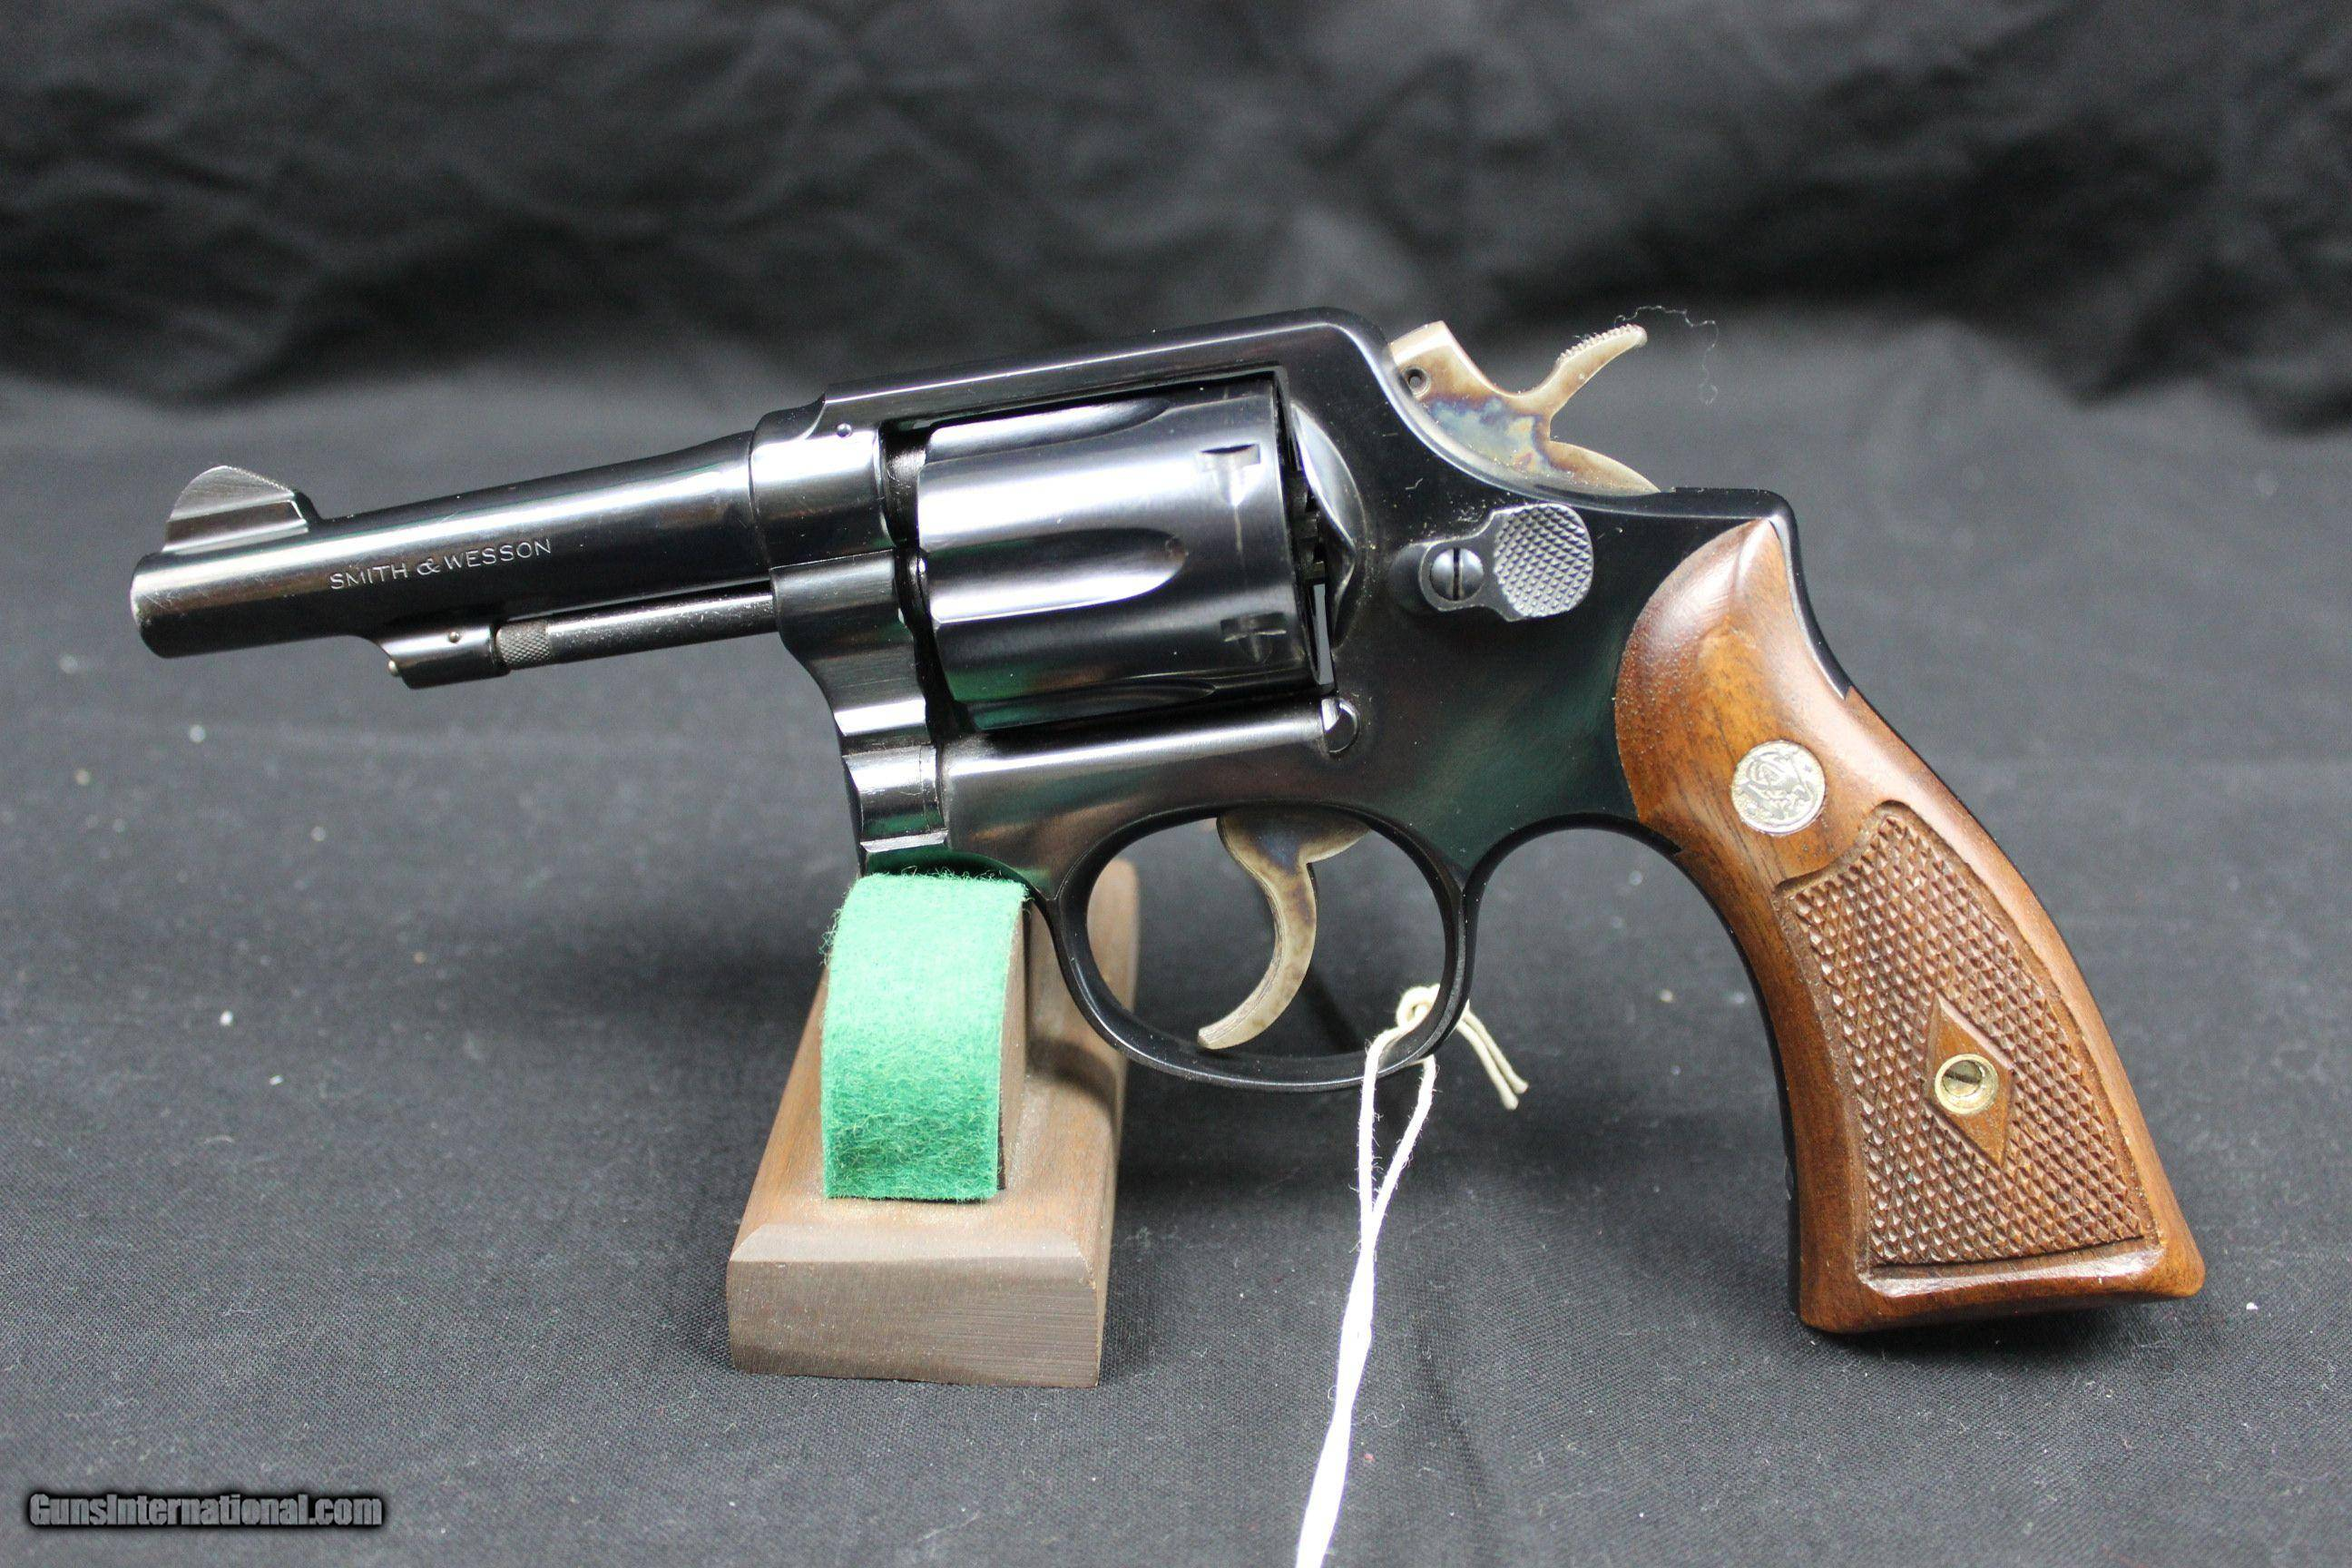 Smith & wesson model 10 - smith & wesson model 10